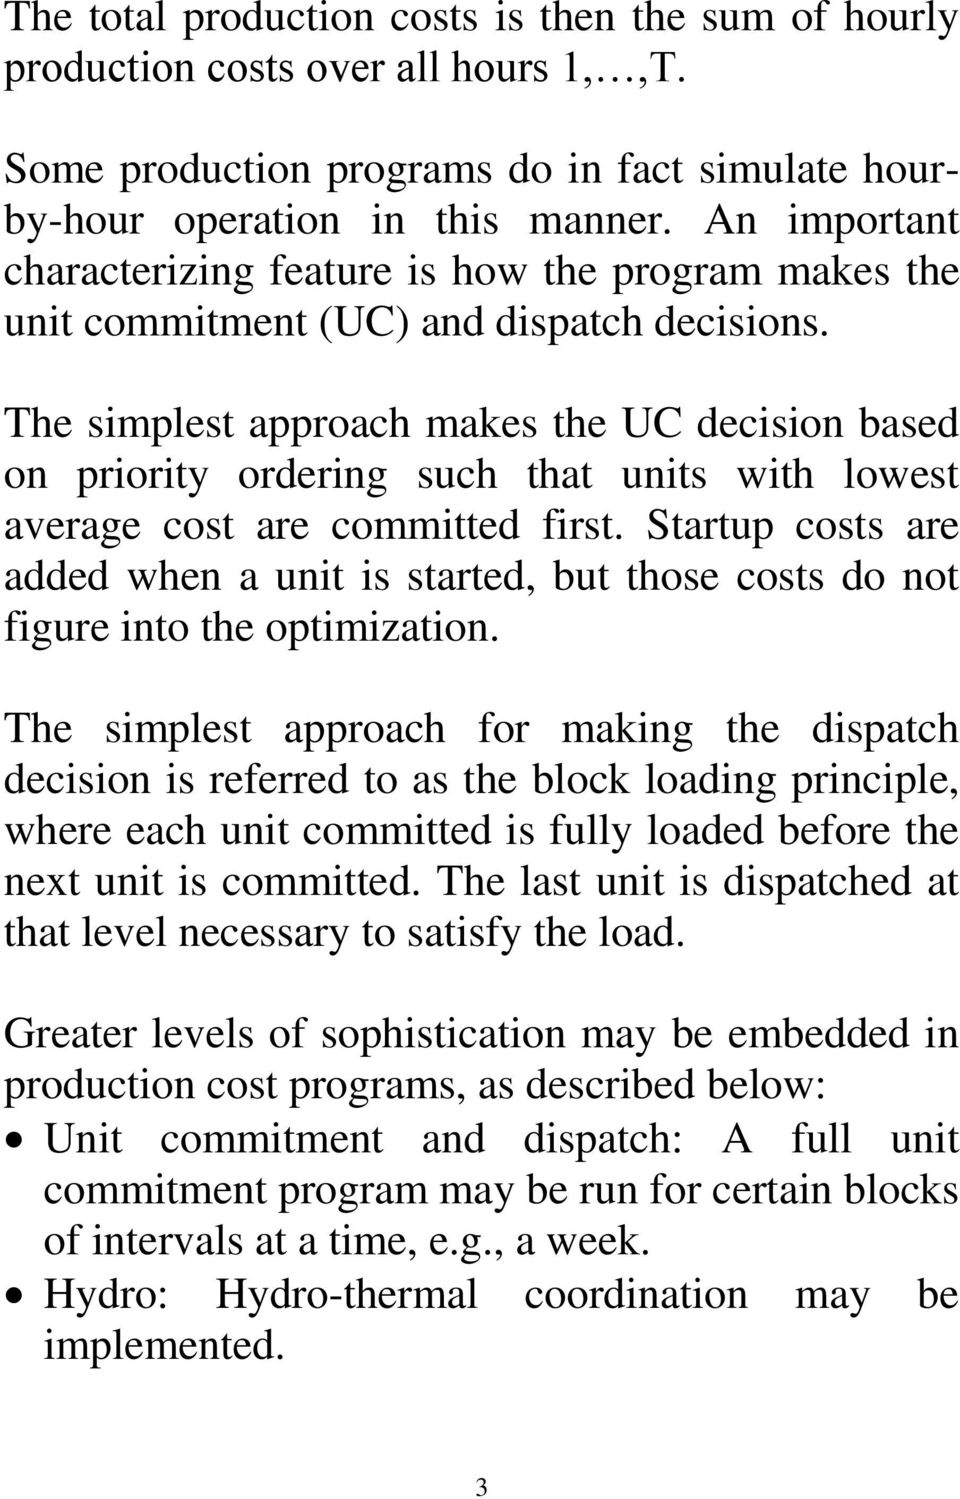 Th simplst approach maks th UC dcision basd on priority ordring such that units with lowst avrag cost ar committd first.